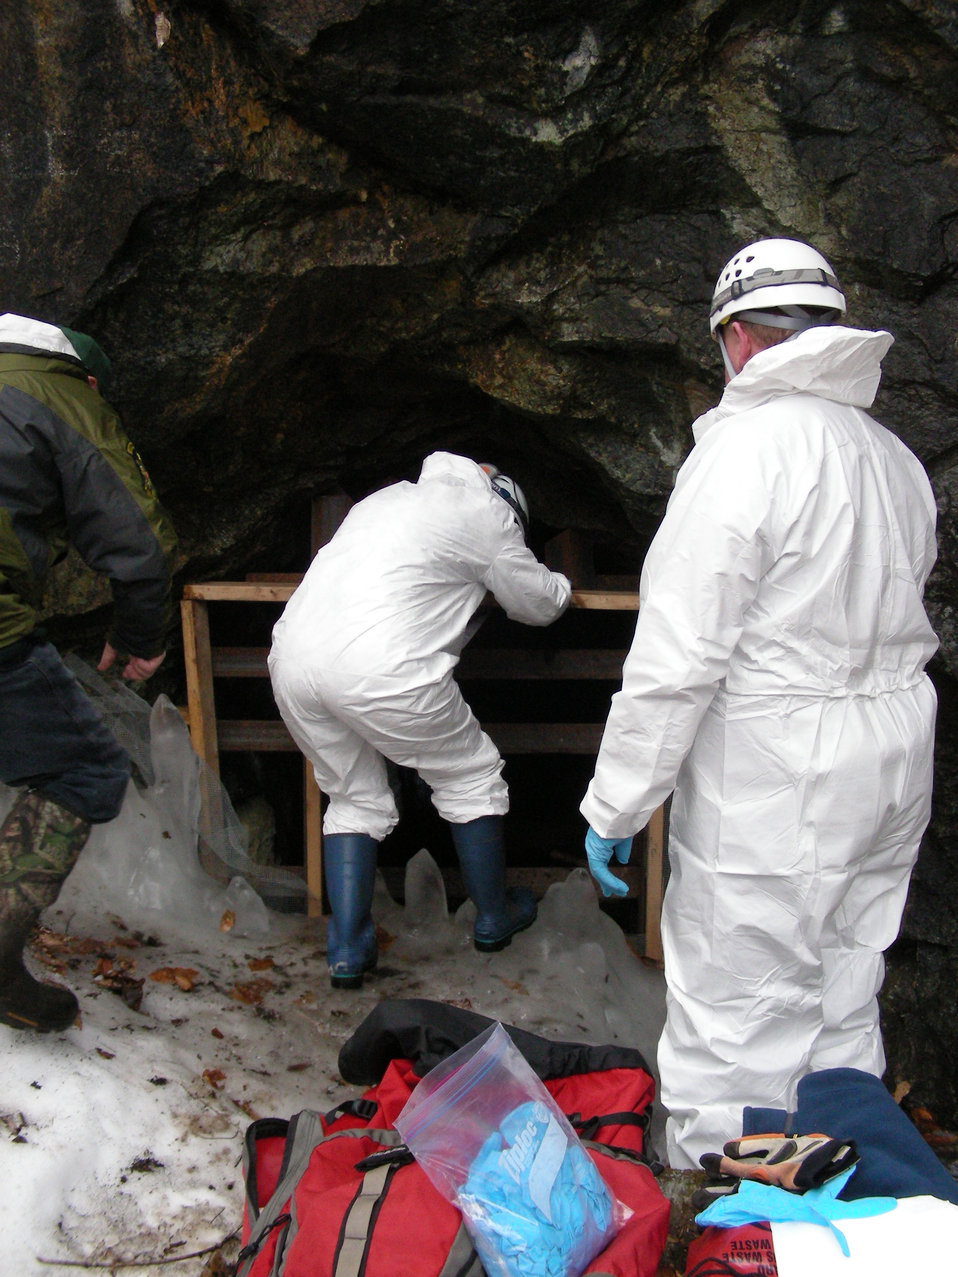 Biologists entering the mine